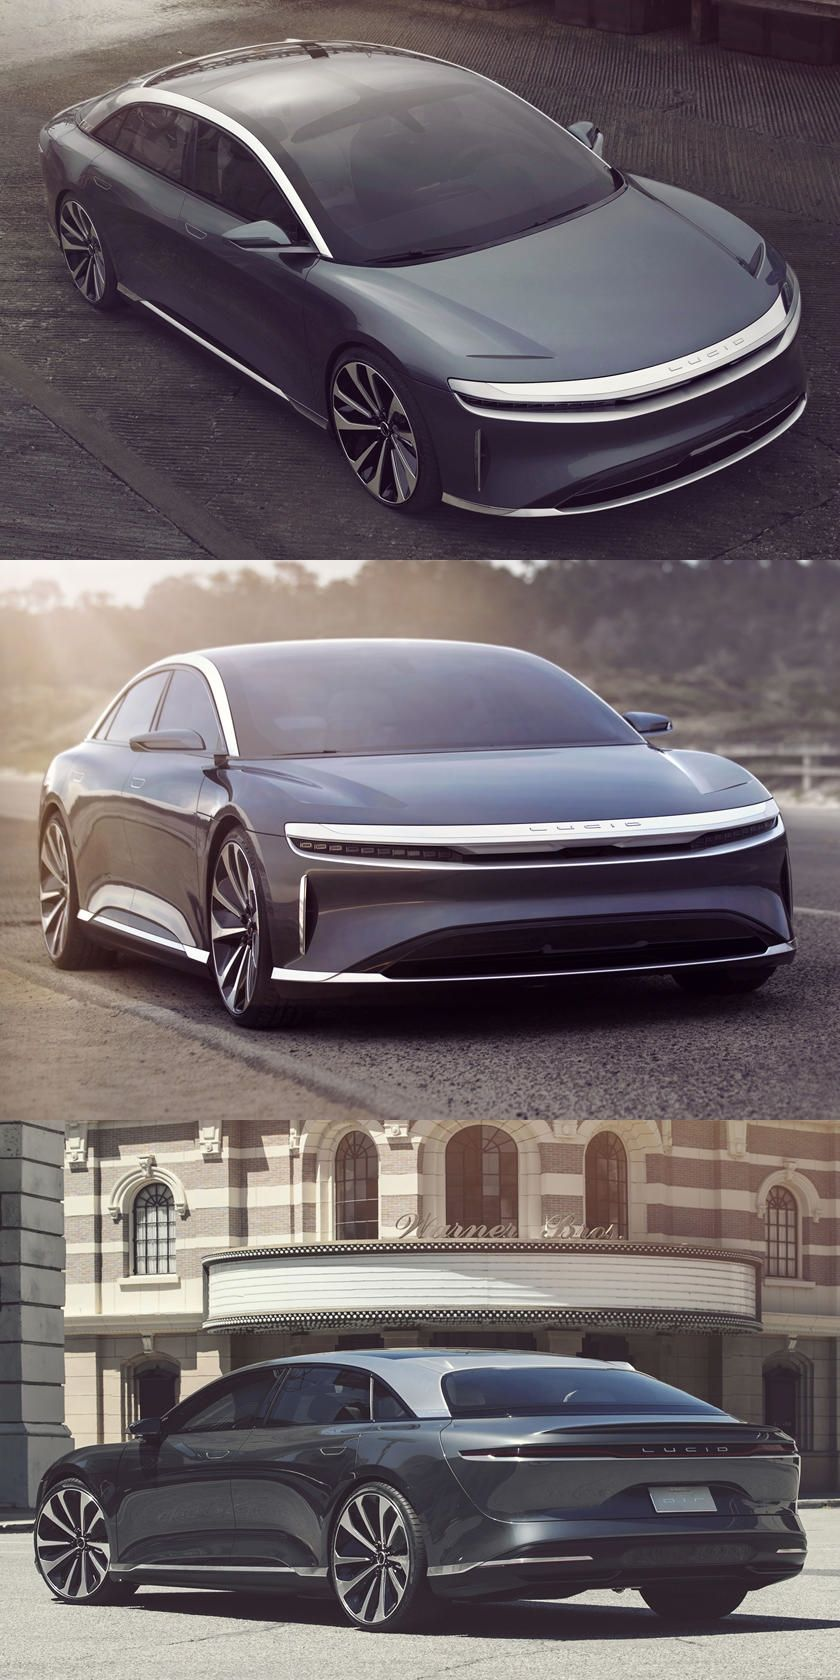 Lucid Air To Reveal 1000HP EV At 2020 New York Auto Show